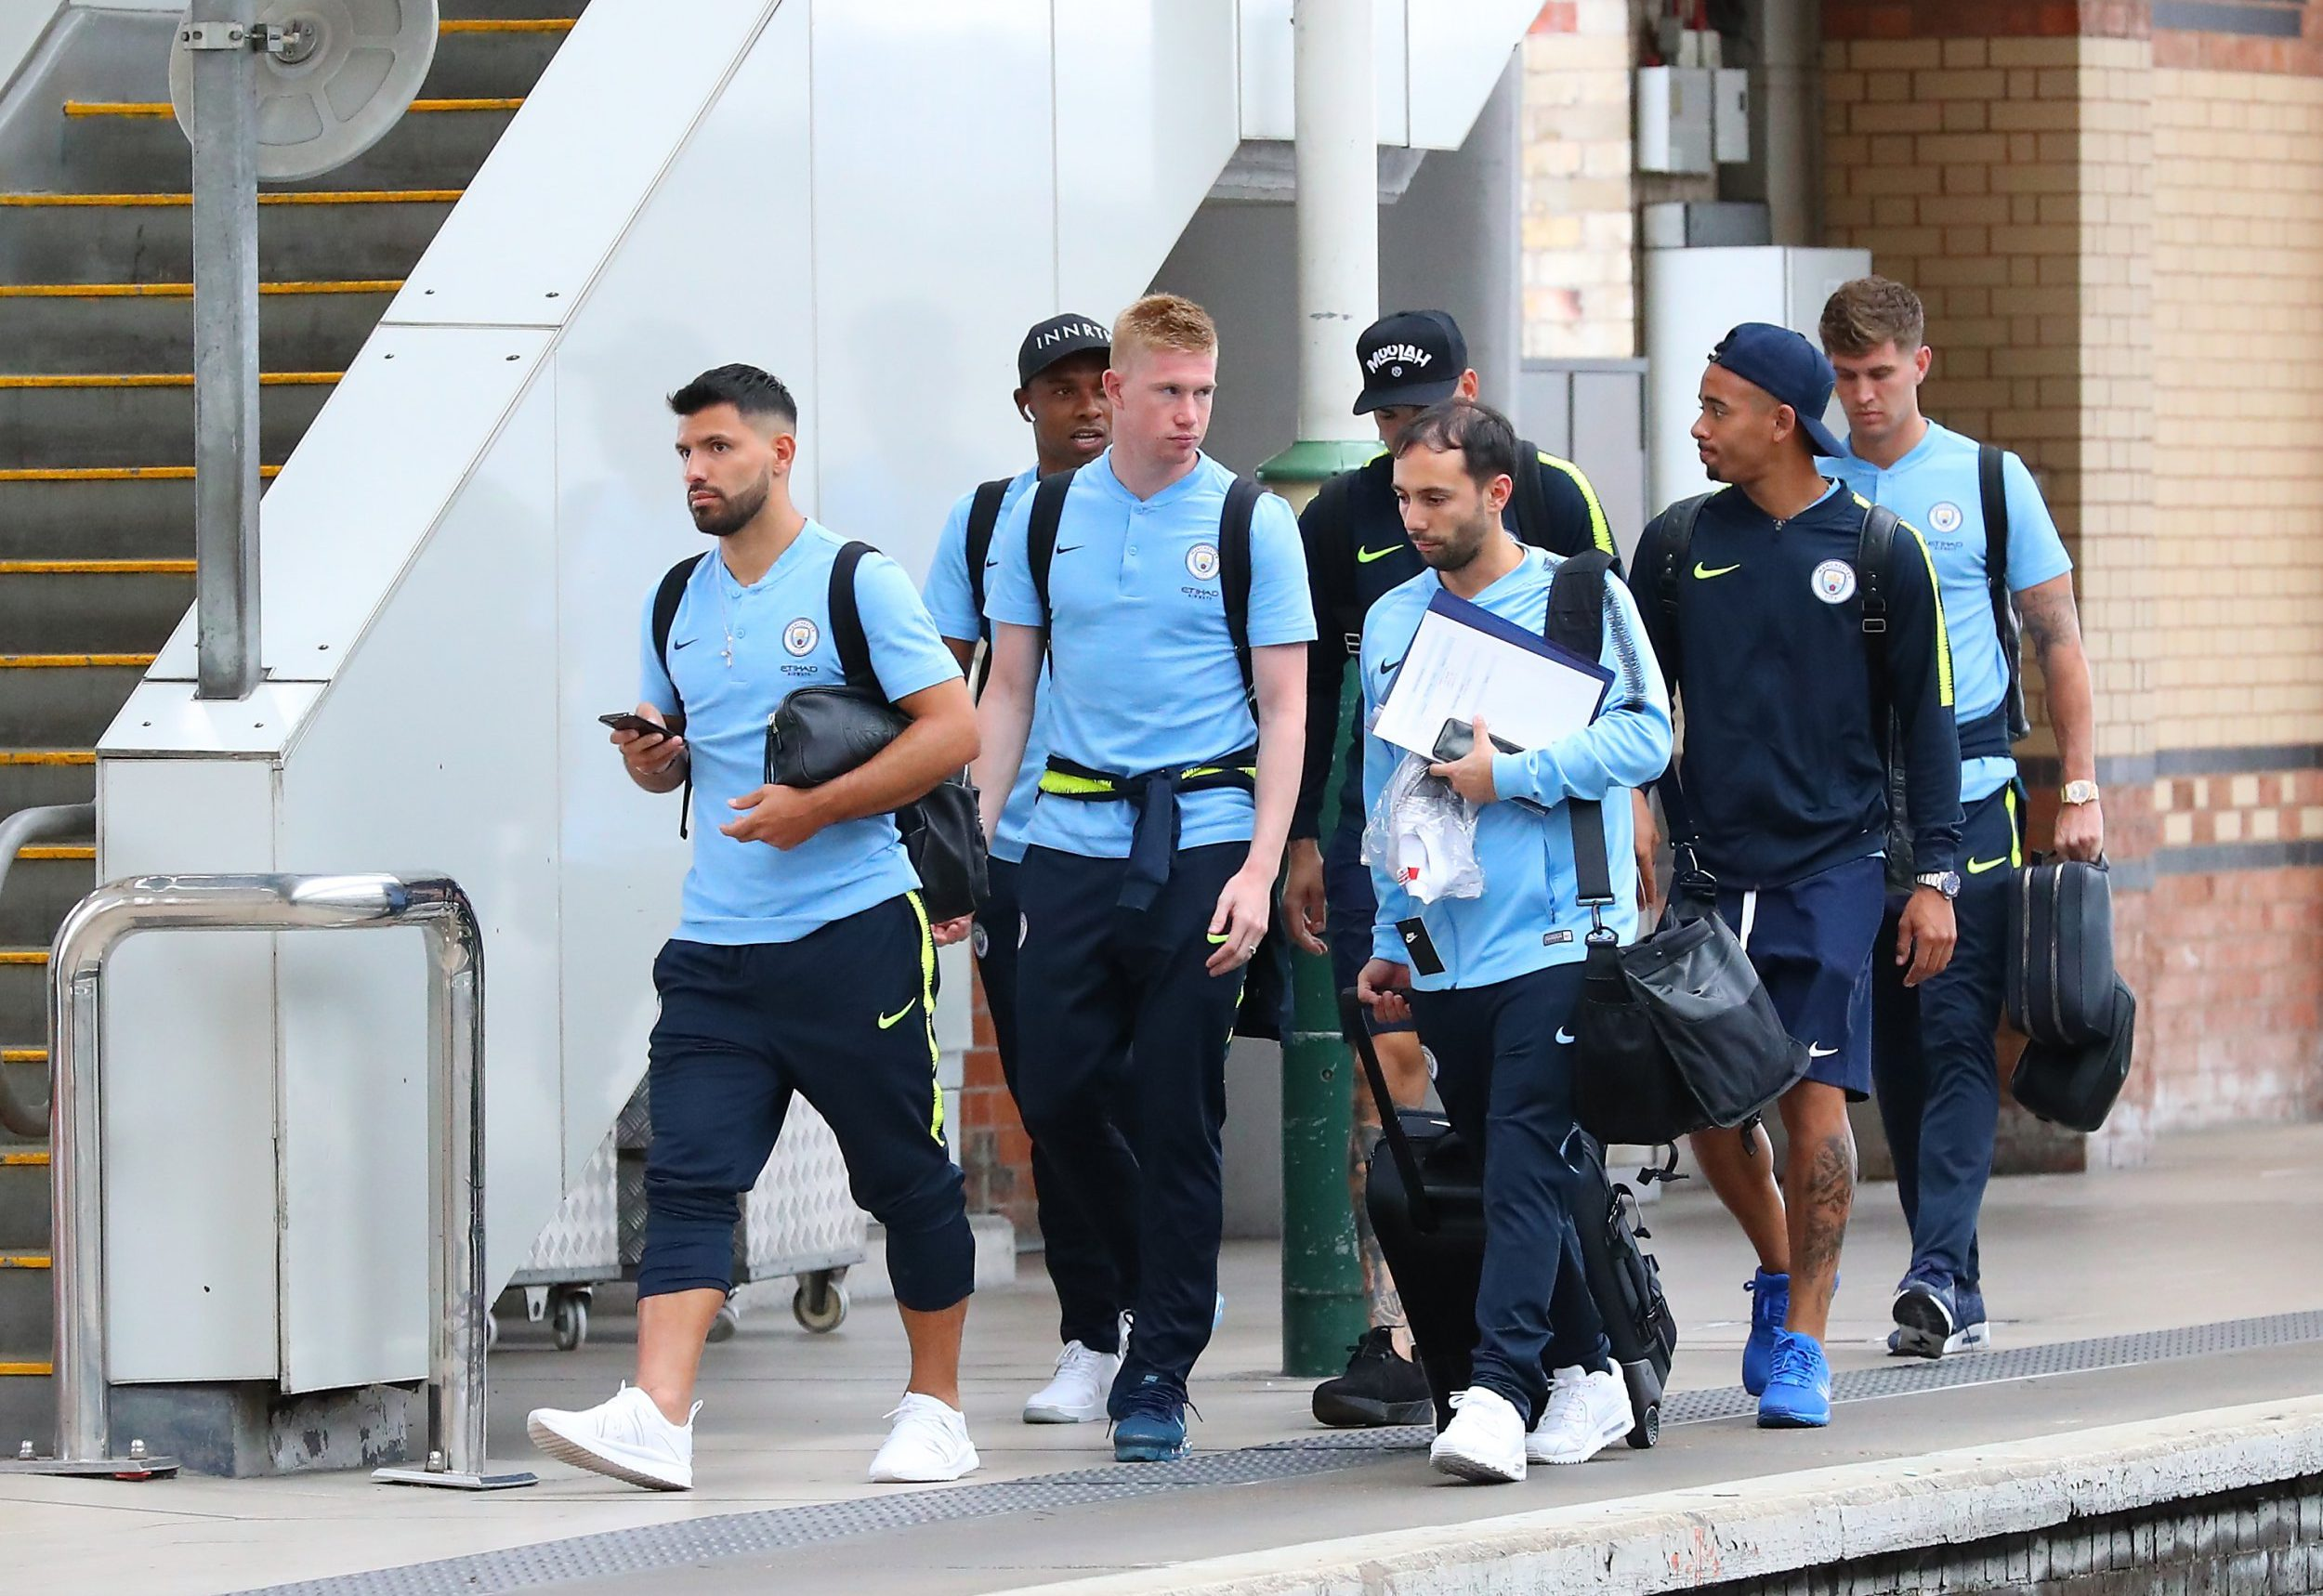 11.8.18???. The Manchester City team get the train to London on Saturday afternoon for the Arsenal match???.. Sergio Aguero, Fernandinho, Kevin De Bruyne, Ederson, Gabriel Jesus and John Stones.